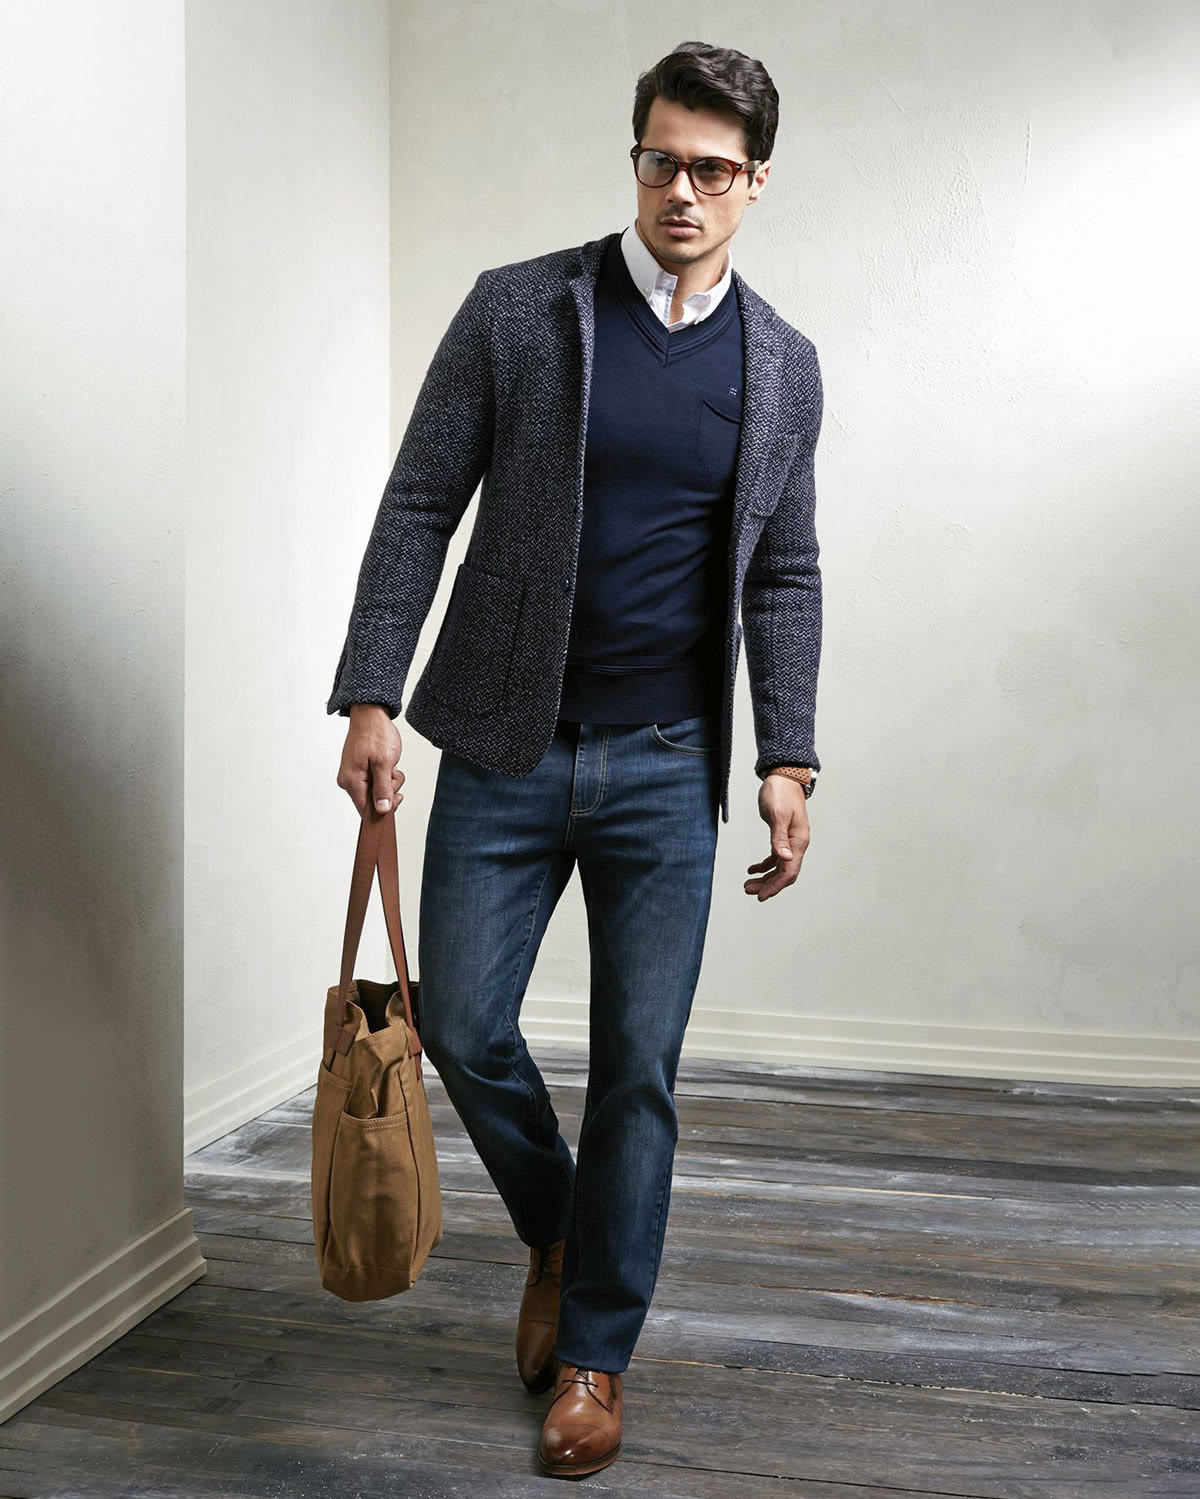 smart casual dress code men autumn style - Luxe Digital